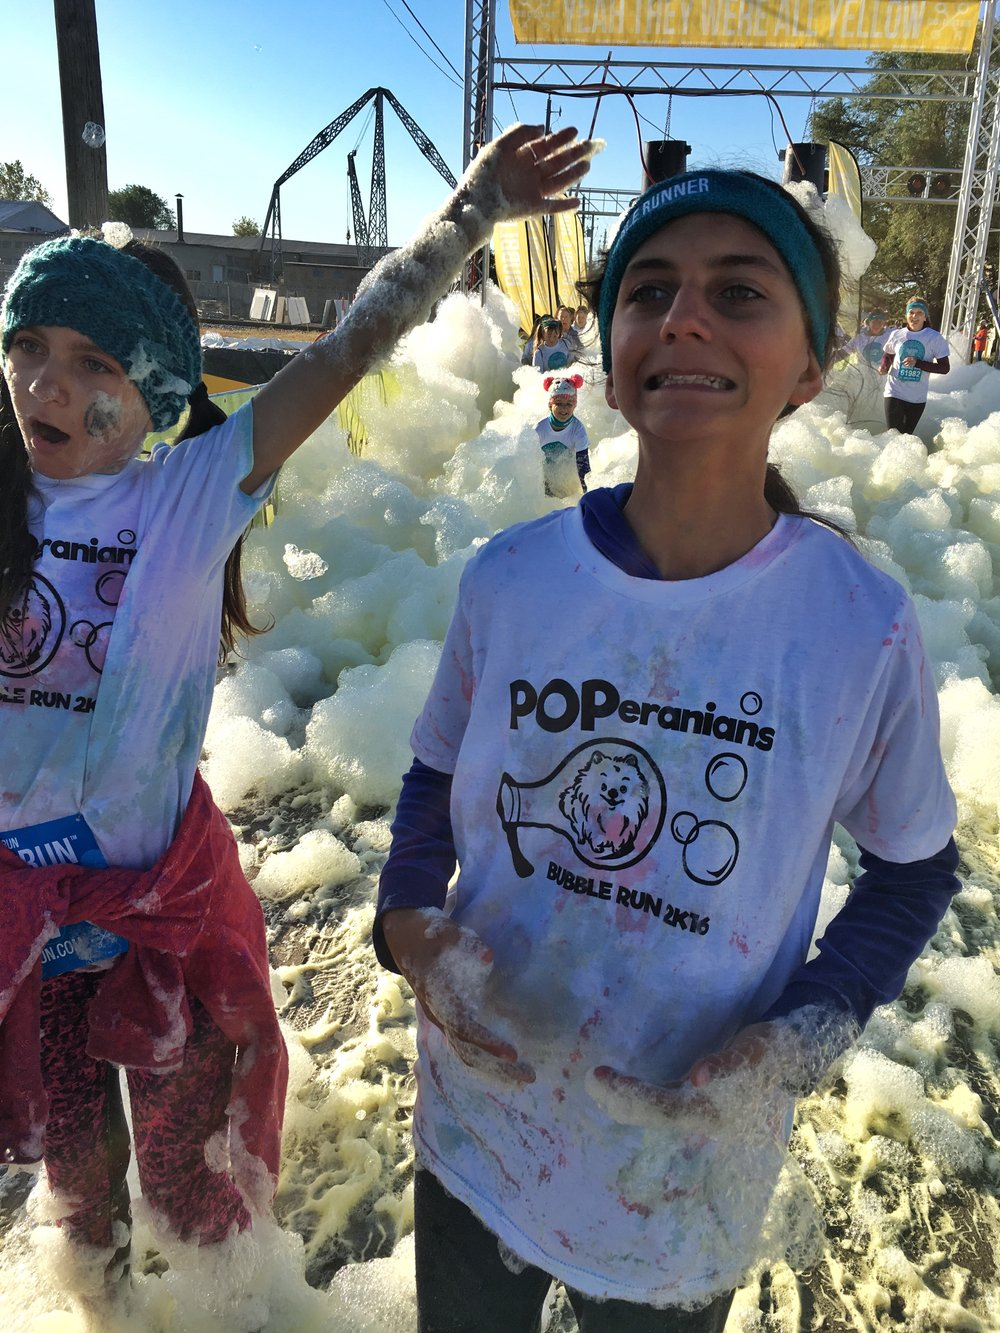 Workshop-poperanians-bubblerun-during-race.JPG